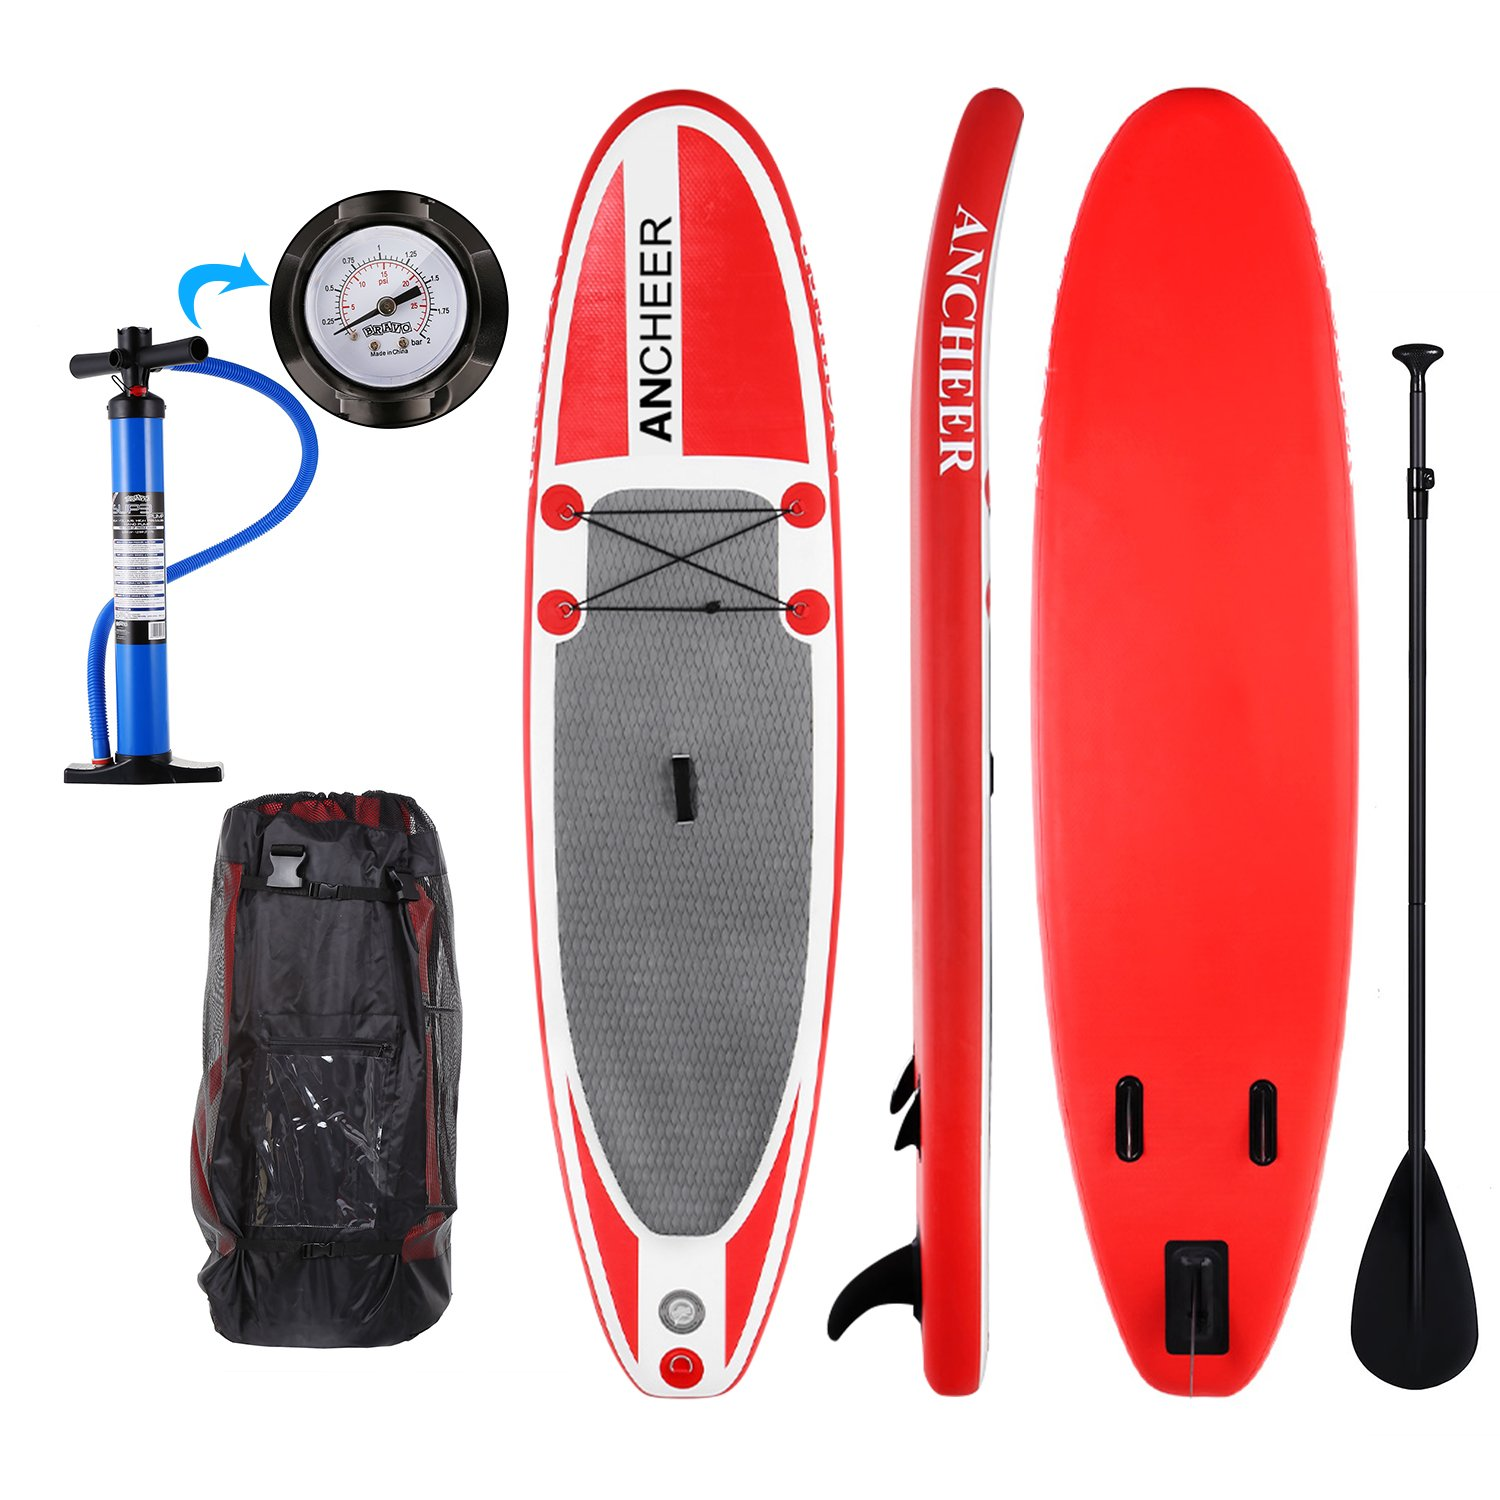 Amazon.com   ANCHEER High Pressure Stand Up Paddleboard Hand Pump Max 27  PSI   Sports   Outdoors 798efac5b